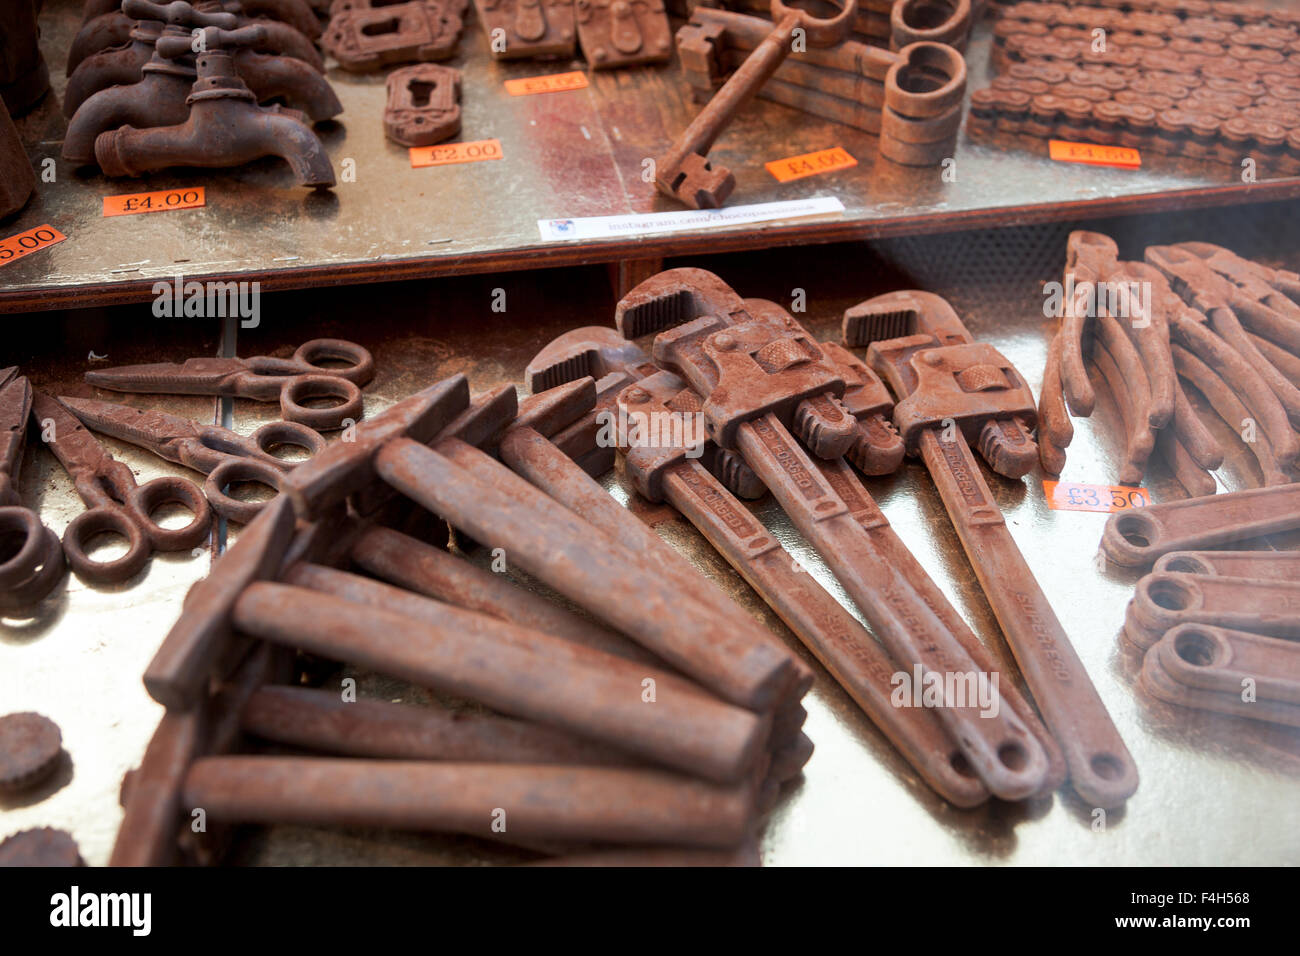 London, UK. 18th October 2015 - Tools made of chocolate Stock ...